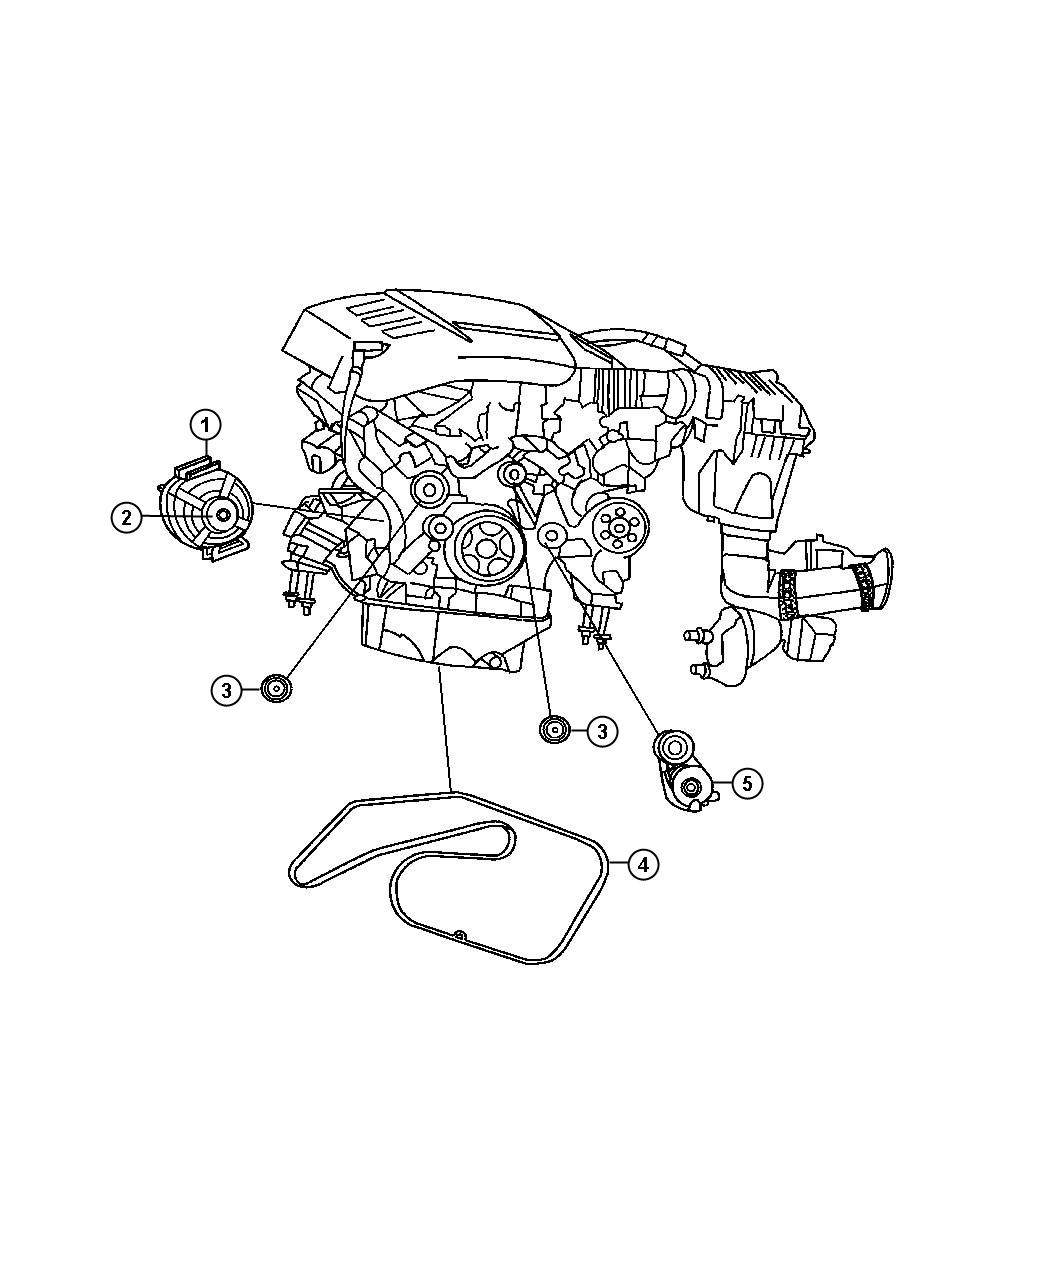 Jeep Grand Cherokee Wiring. Used for: alternator and